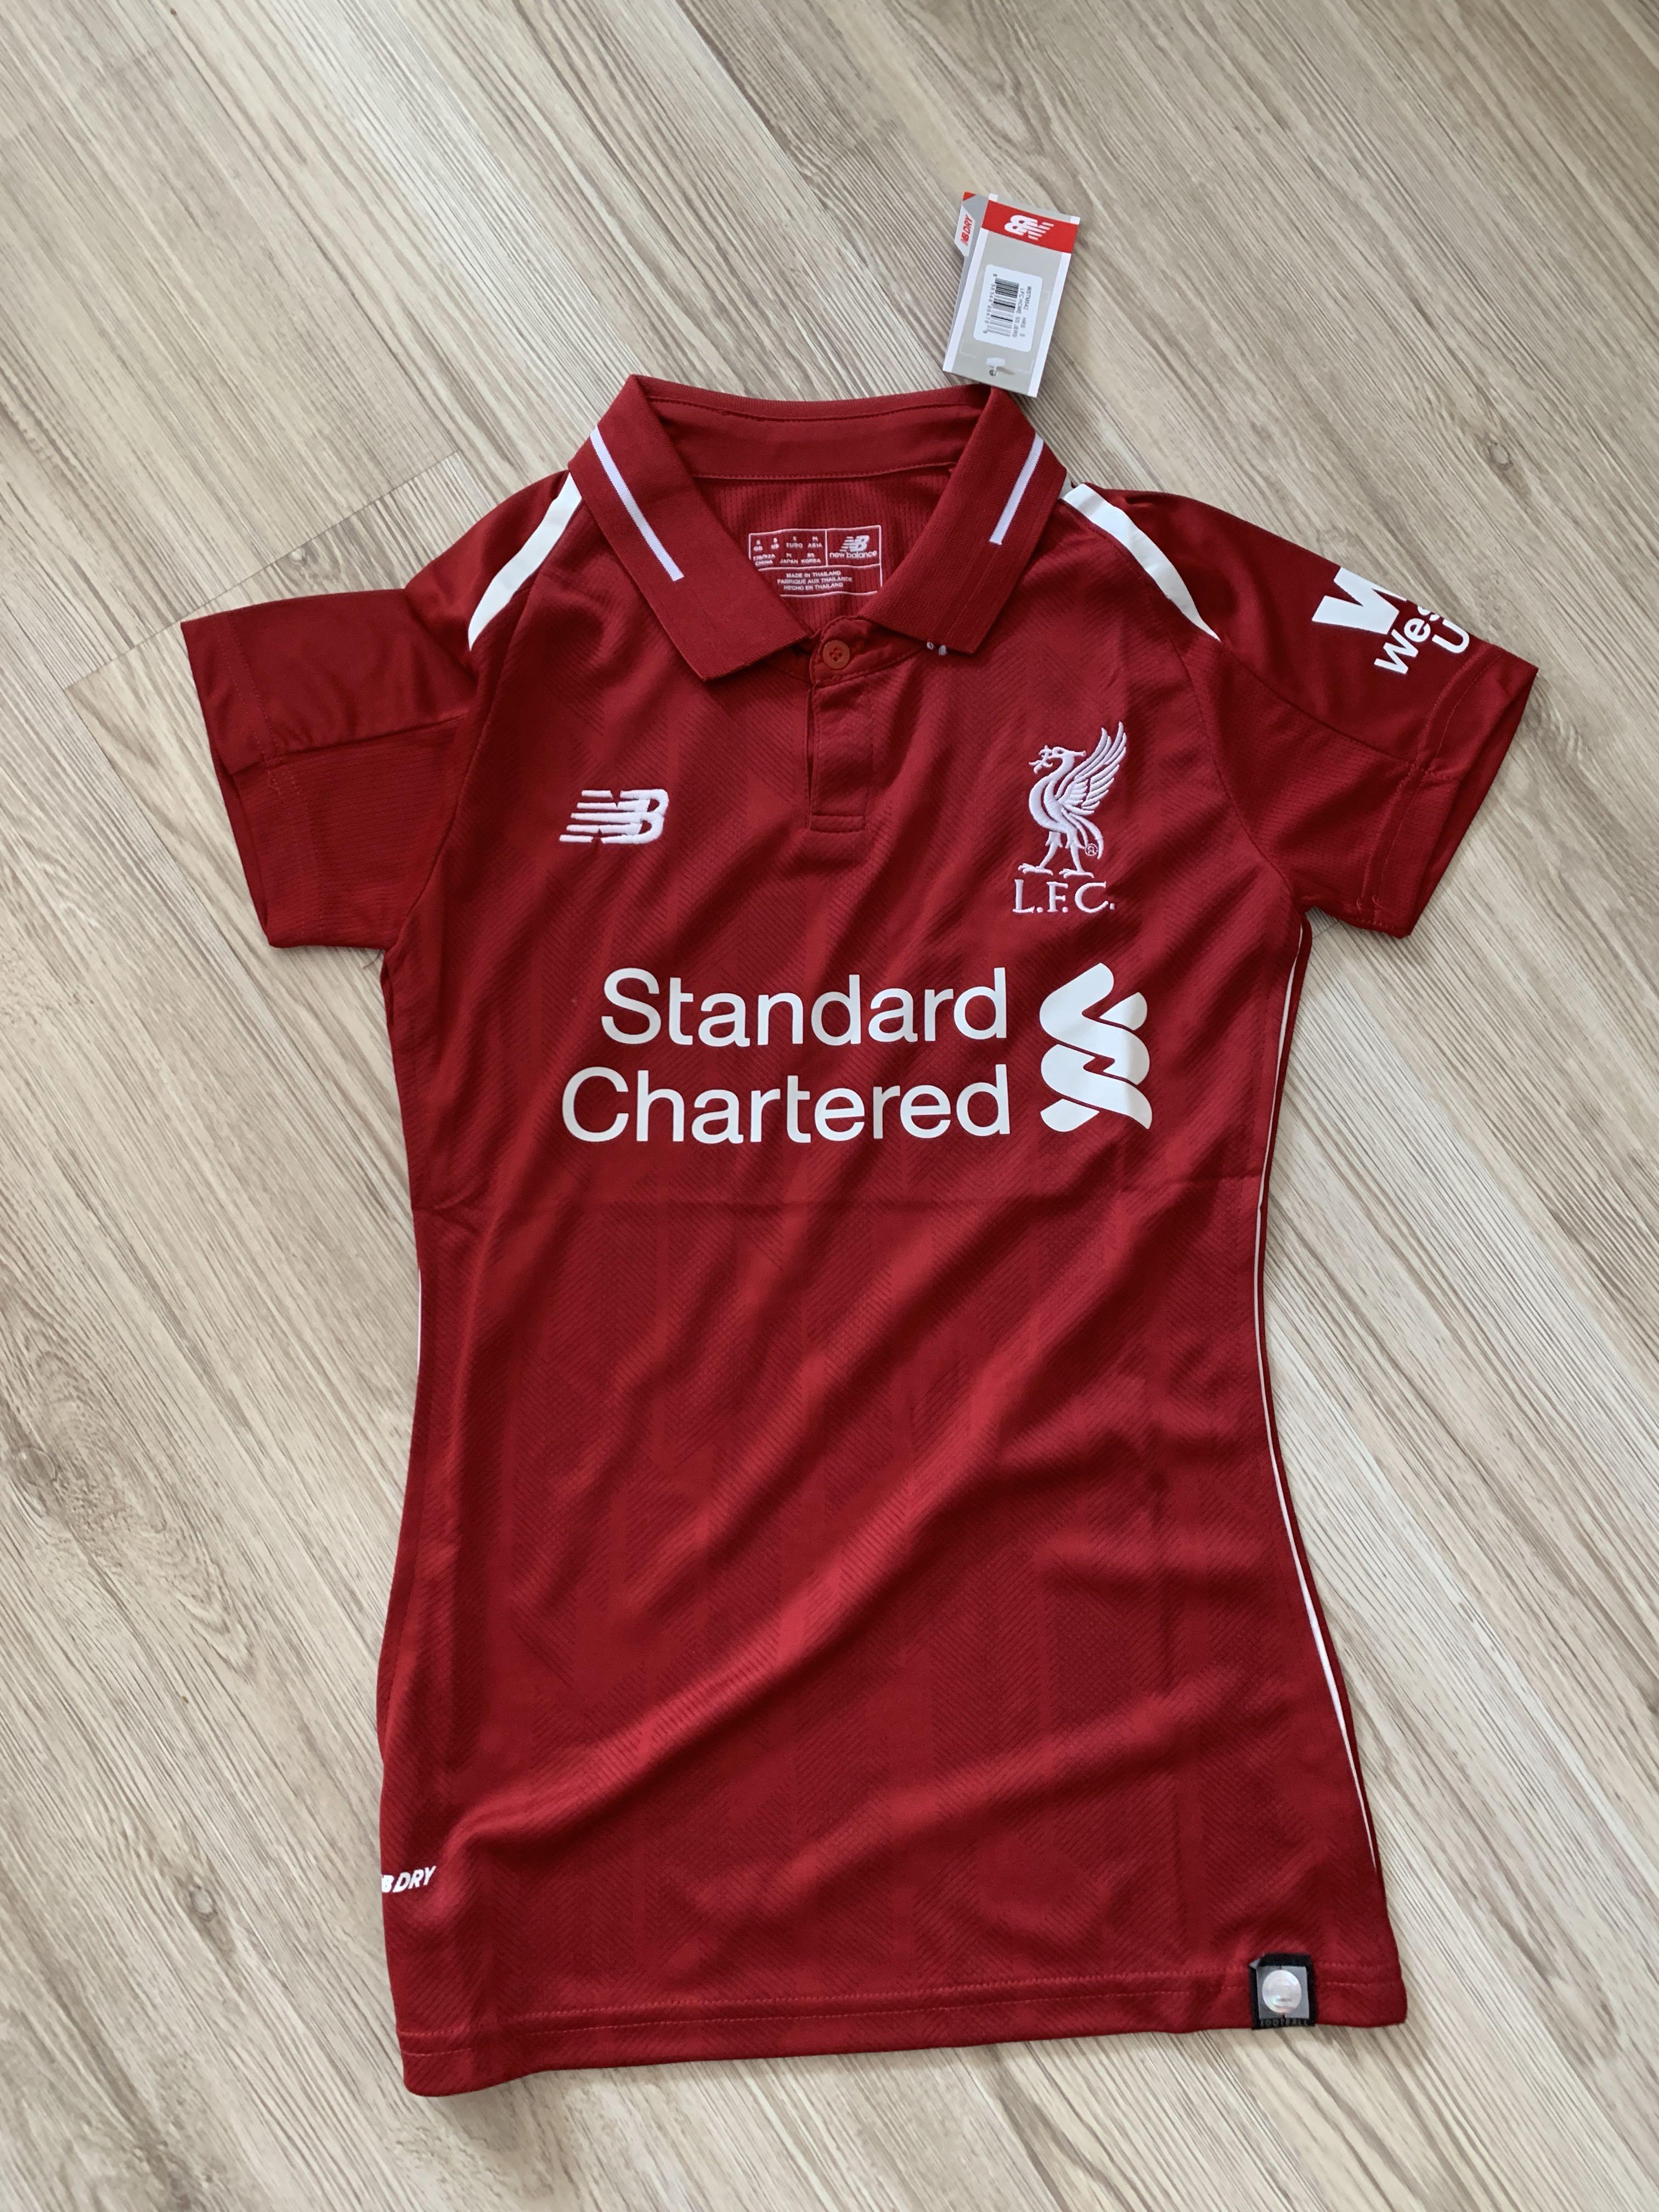 new product 39563 92b37 Women's Liverpool jersey women Liverpool home kit jersey 18 ...